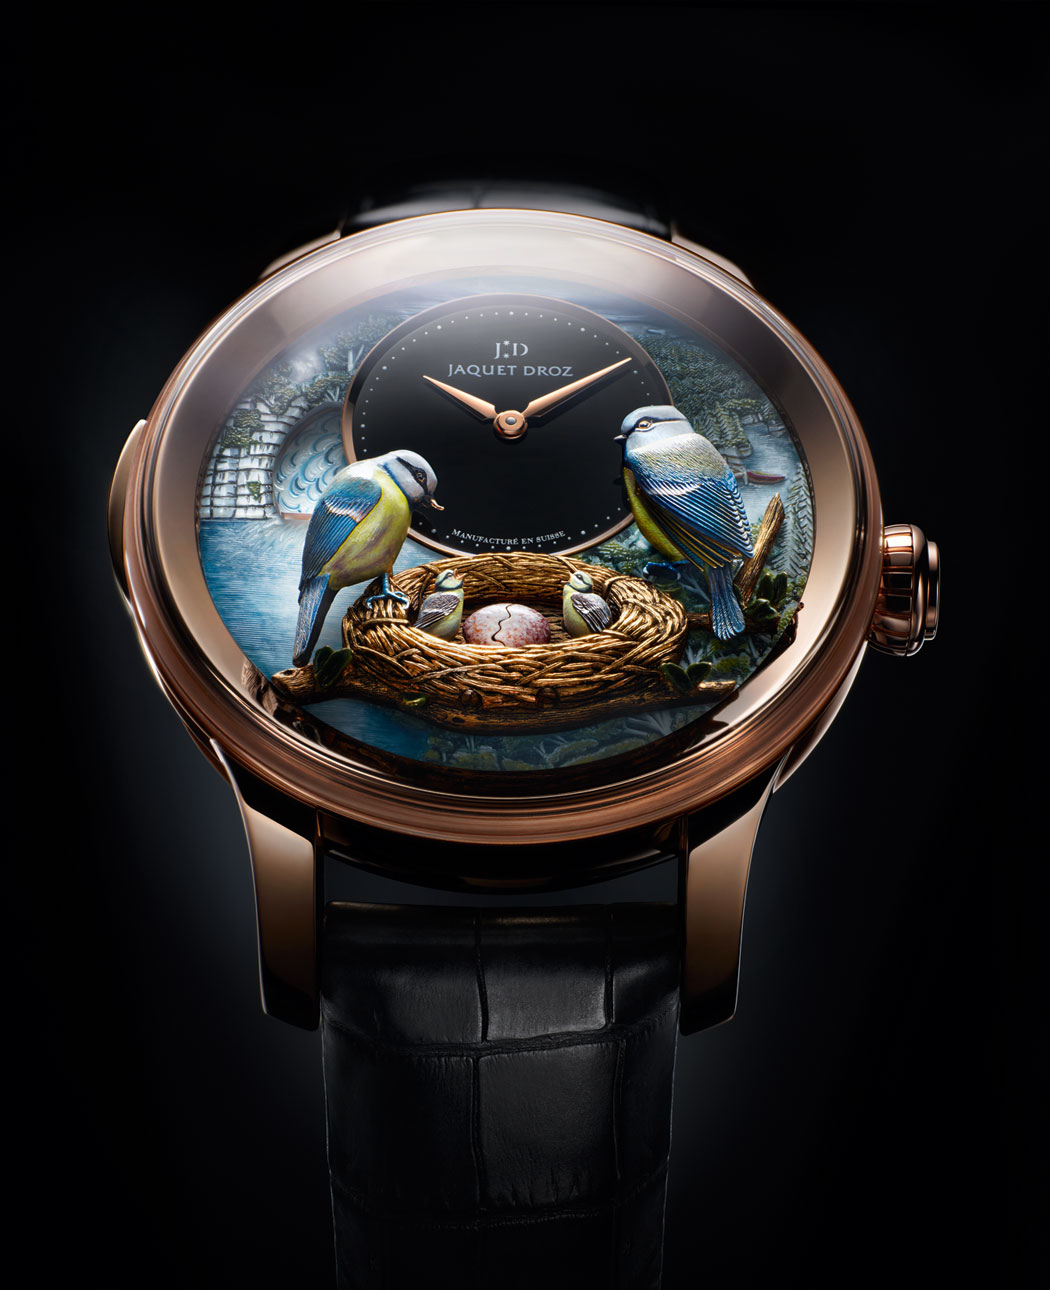 THE BIRD REPEATER de Jaquet-Droz